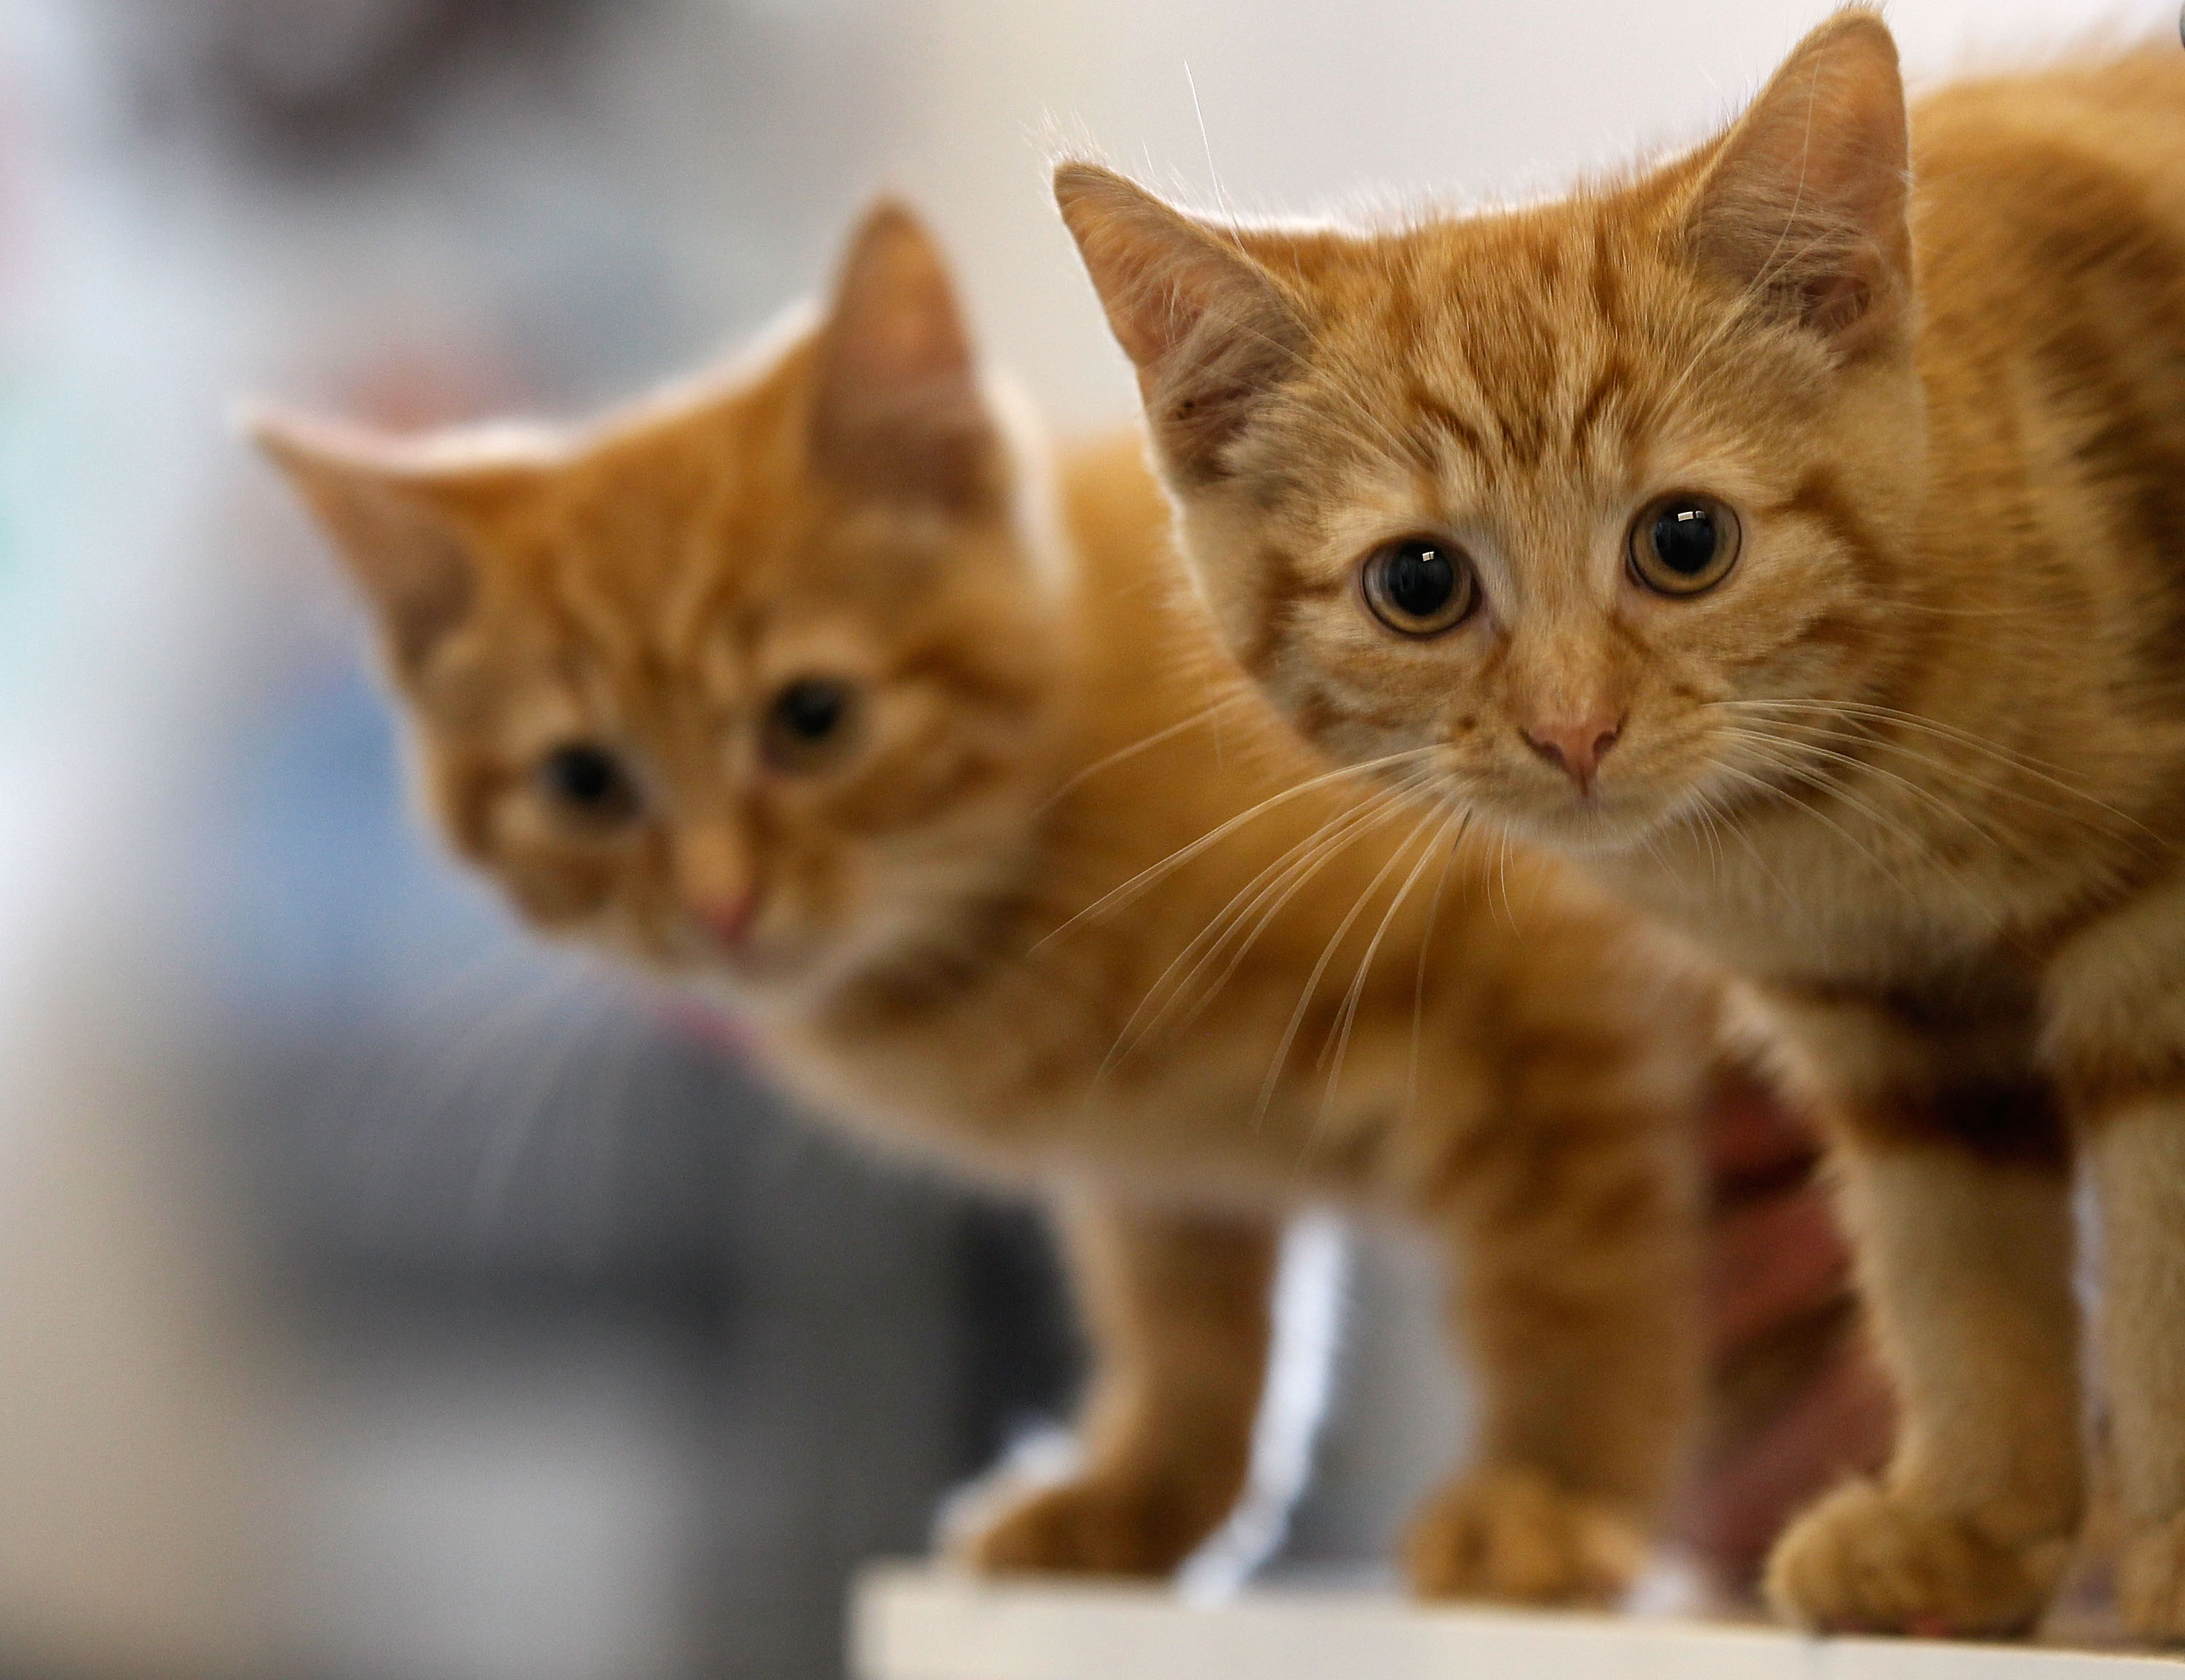 19 evicted cats in need of homes in Tucson   Local news